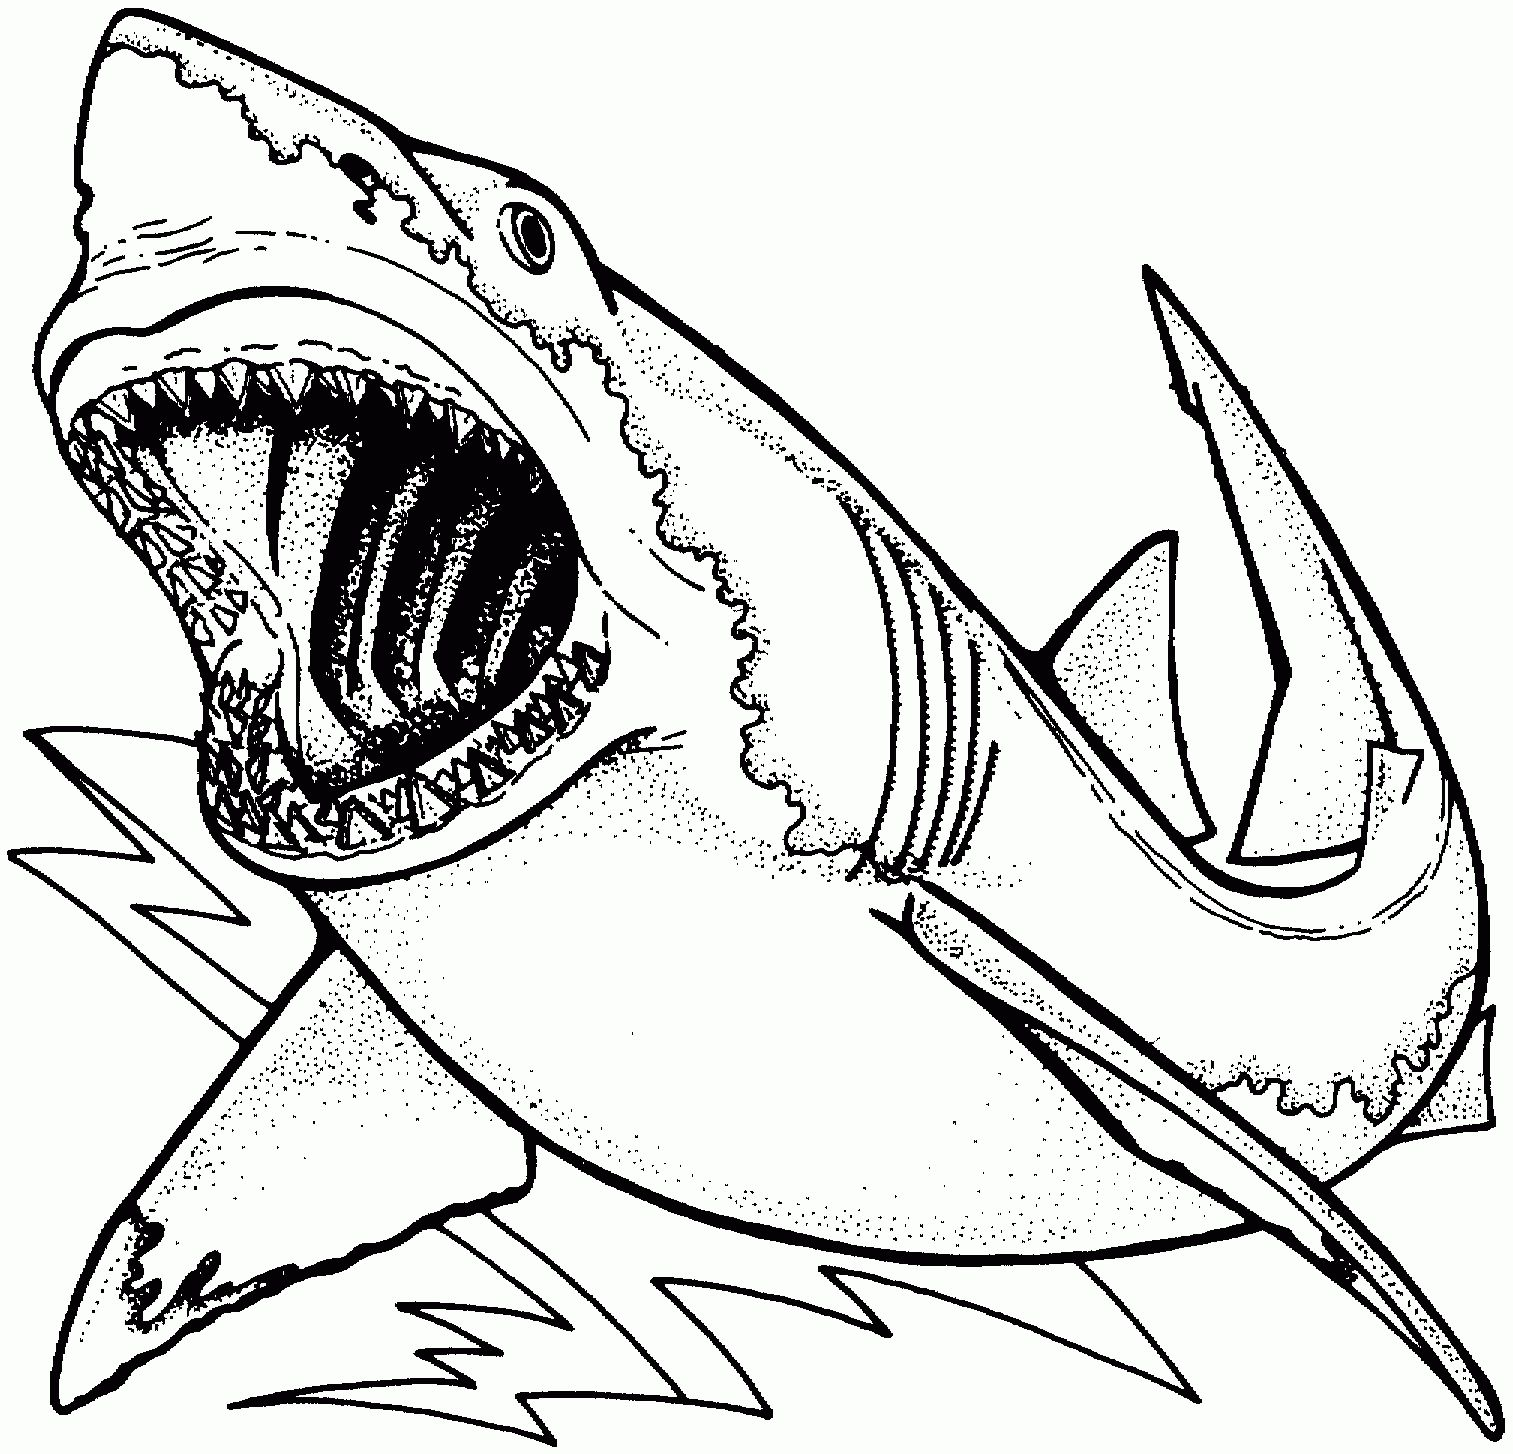 Realistic Tiger Shark Coloring Page Shark Coloring Pages Tiger Shark Shark Drawing